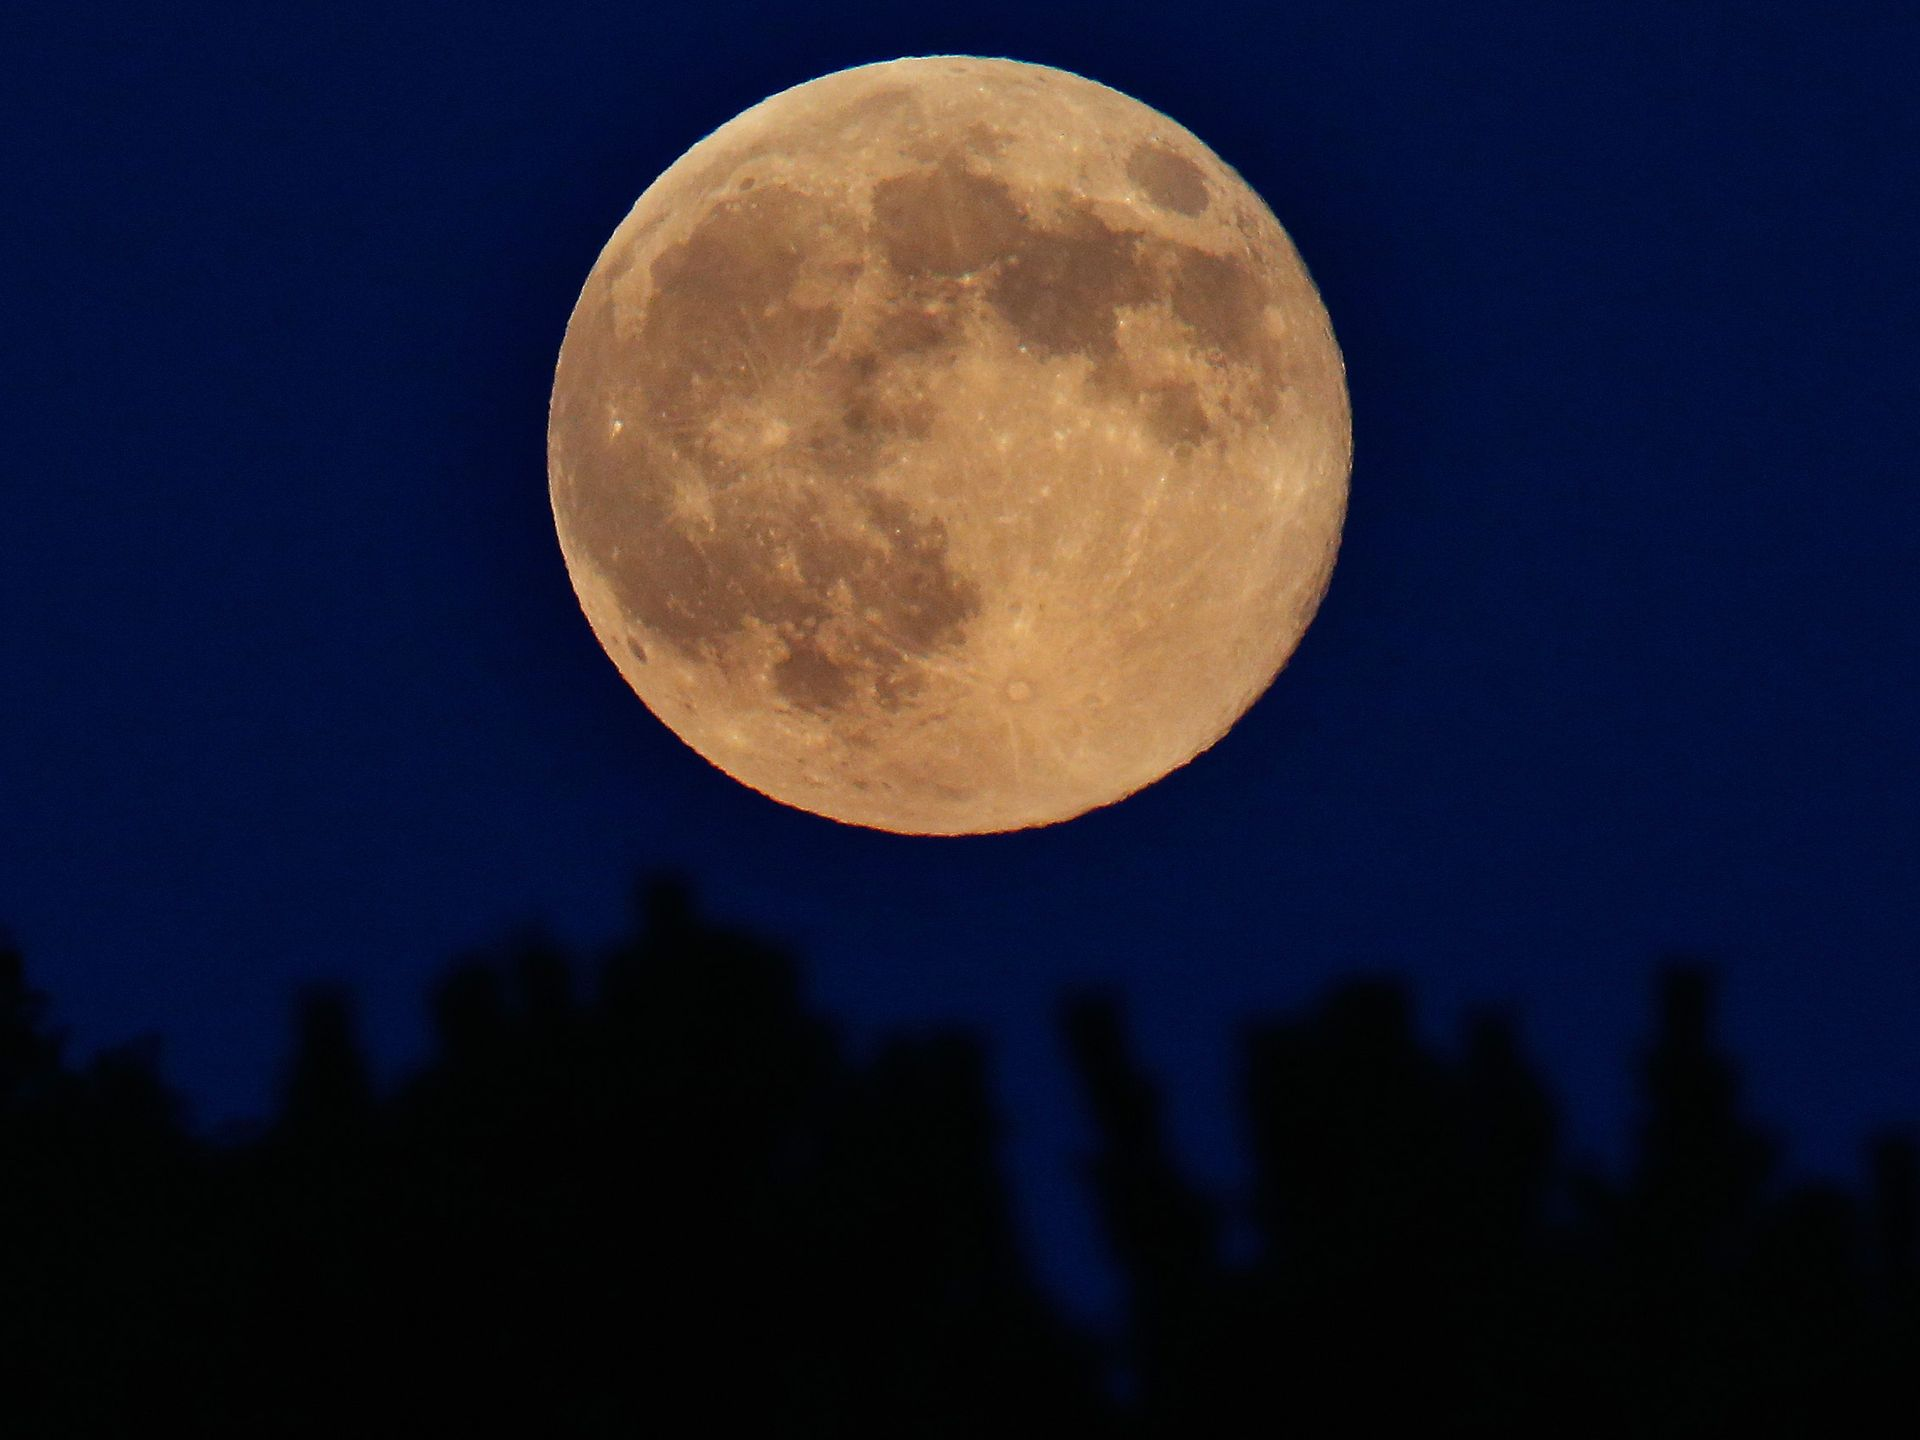 A supermoon rises over the trees in Spencer, New York, on Aug. 10, 2014. (Photo: Tom Pennington, Getty Images)